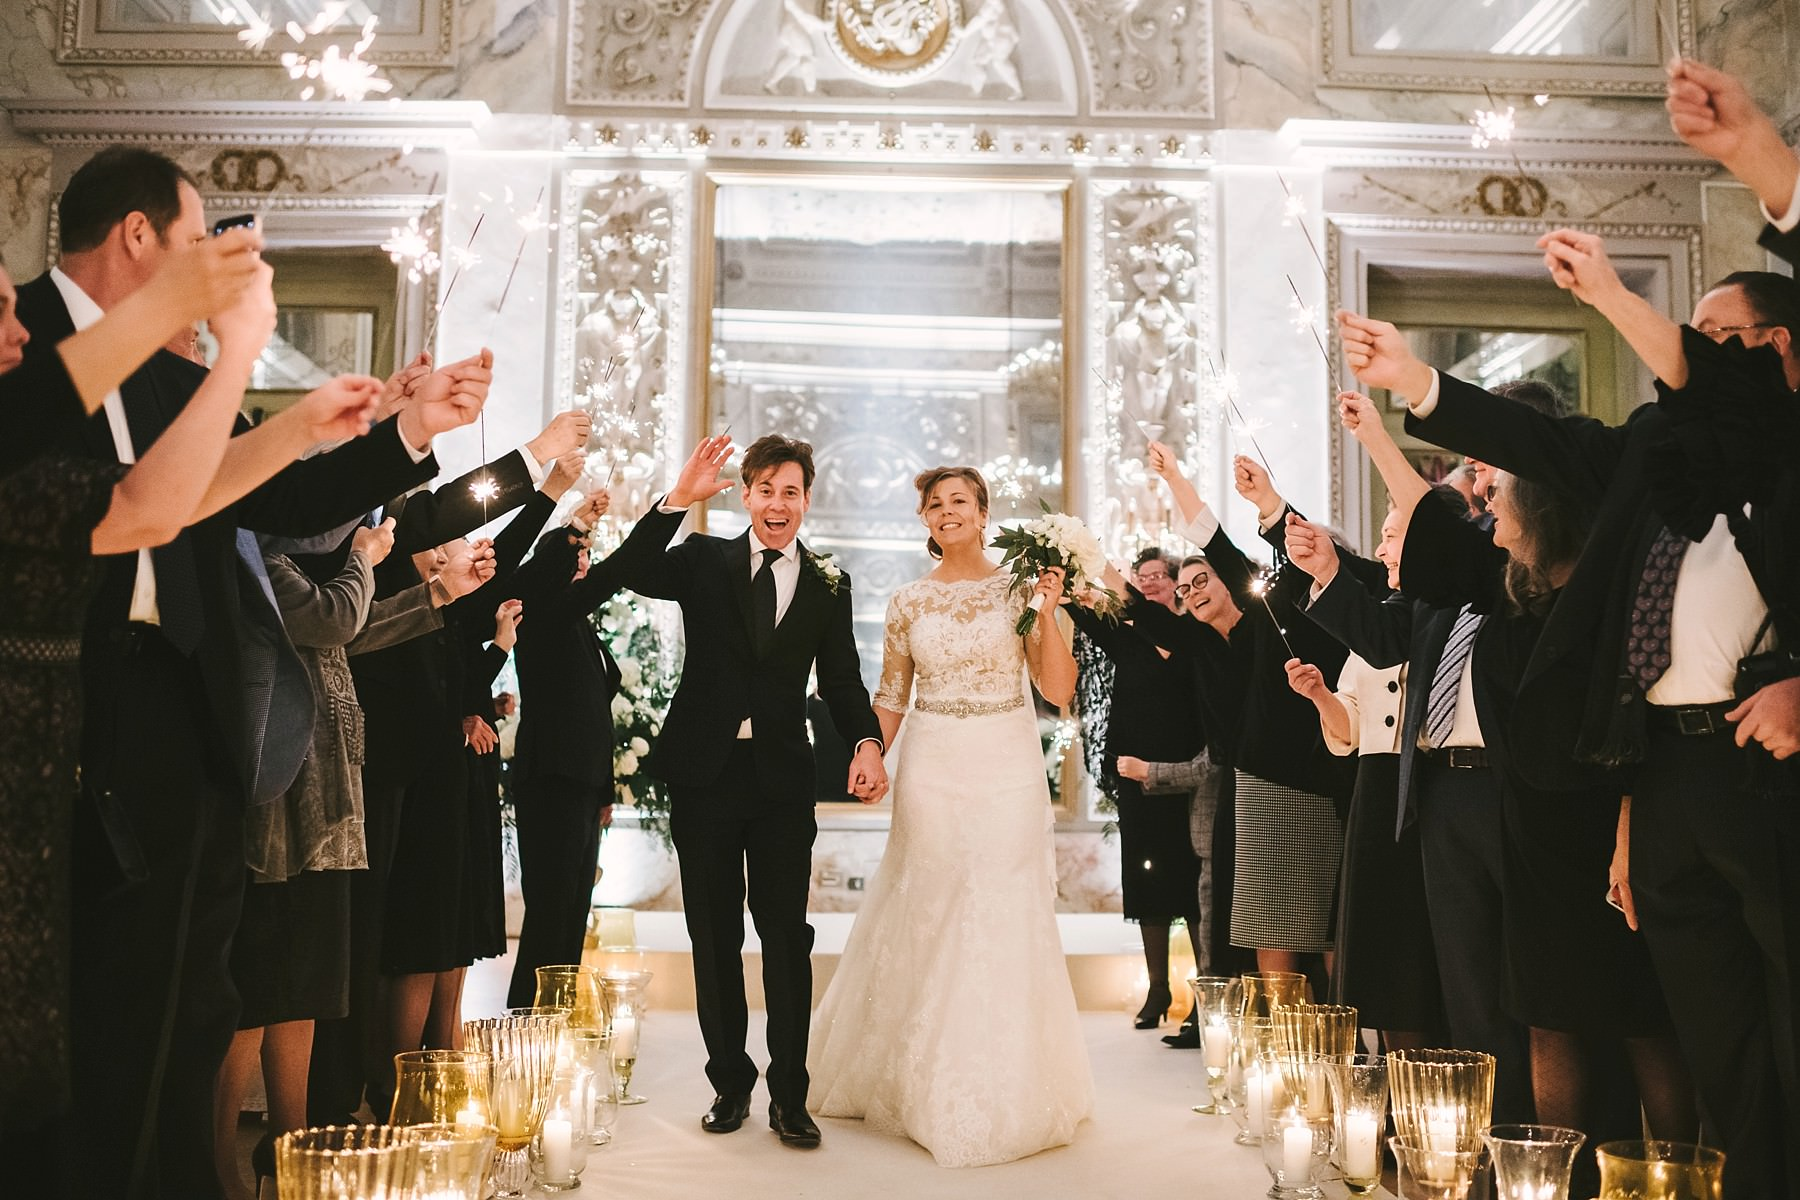 Lovely bride and groom are enjoying sparkles with guests into Sala delle Feste ballroom at Hotel St. Regis Florence